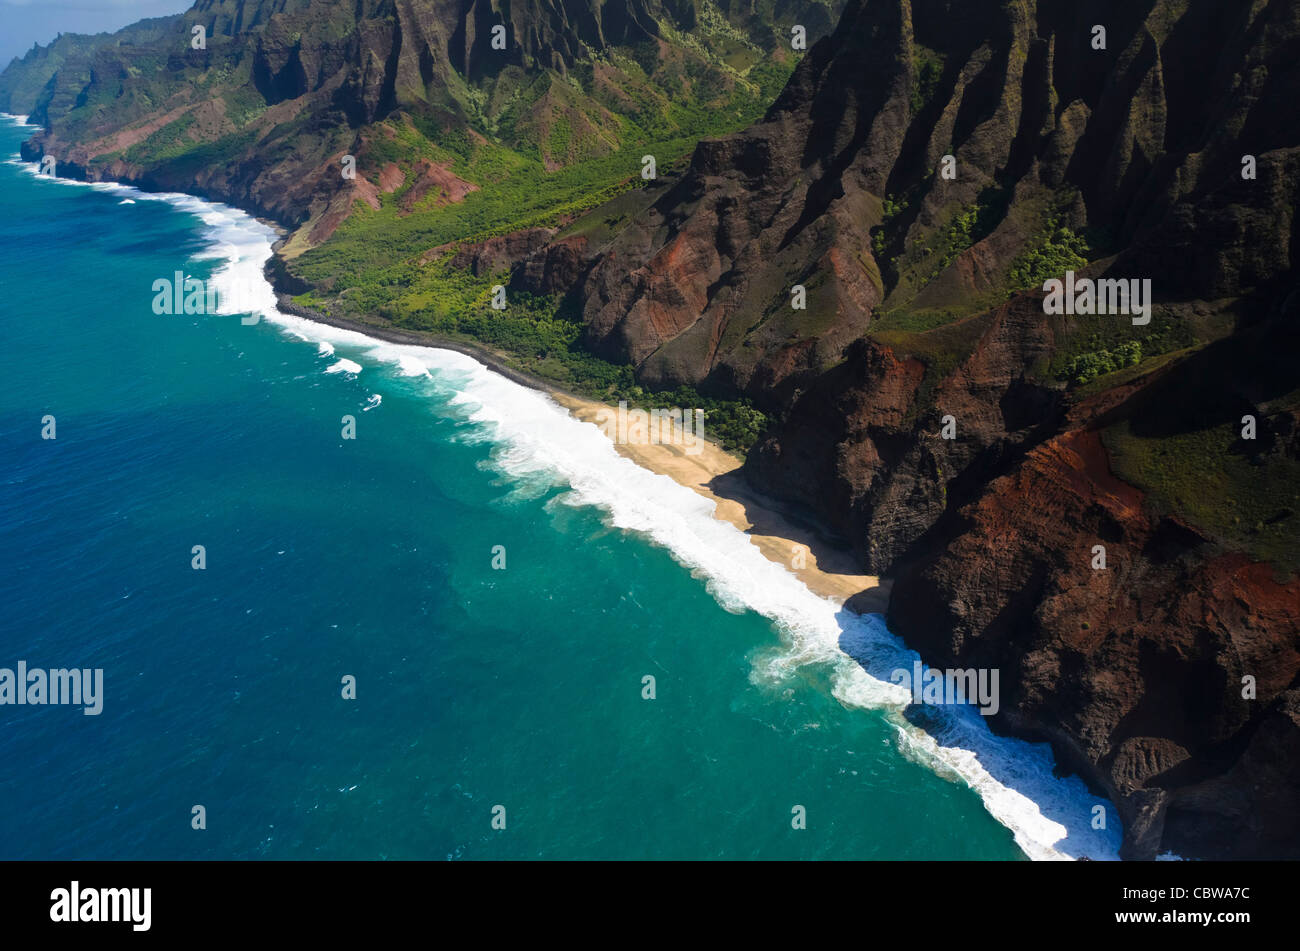 The Na Pali coast from the sky, Kauai Island, Hawaii, USA - Stock Image